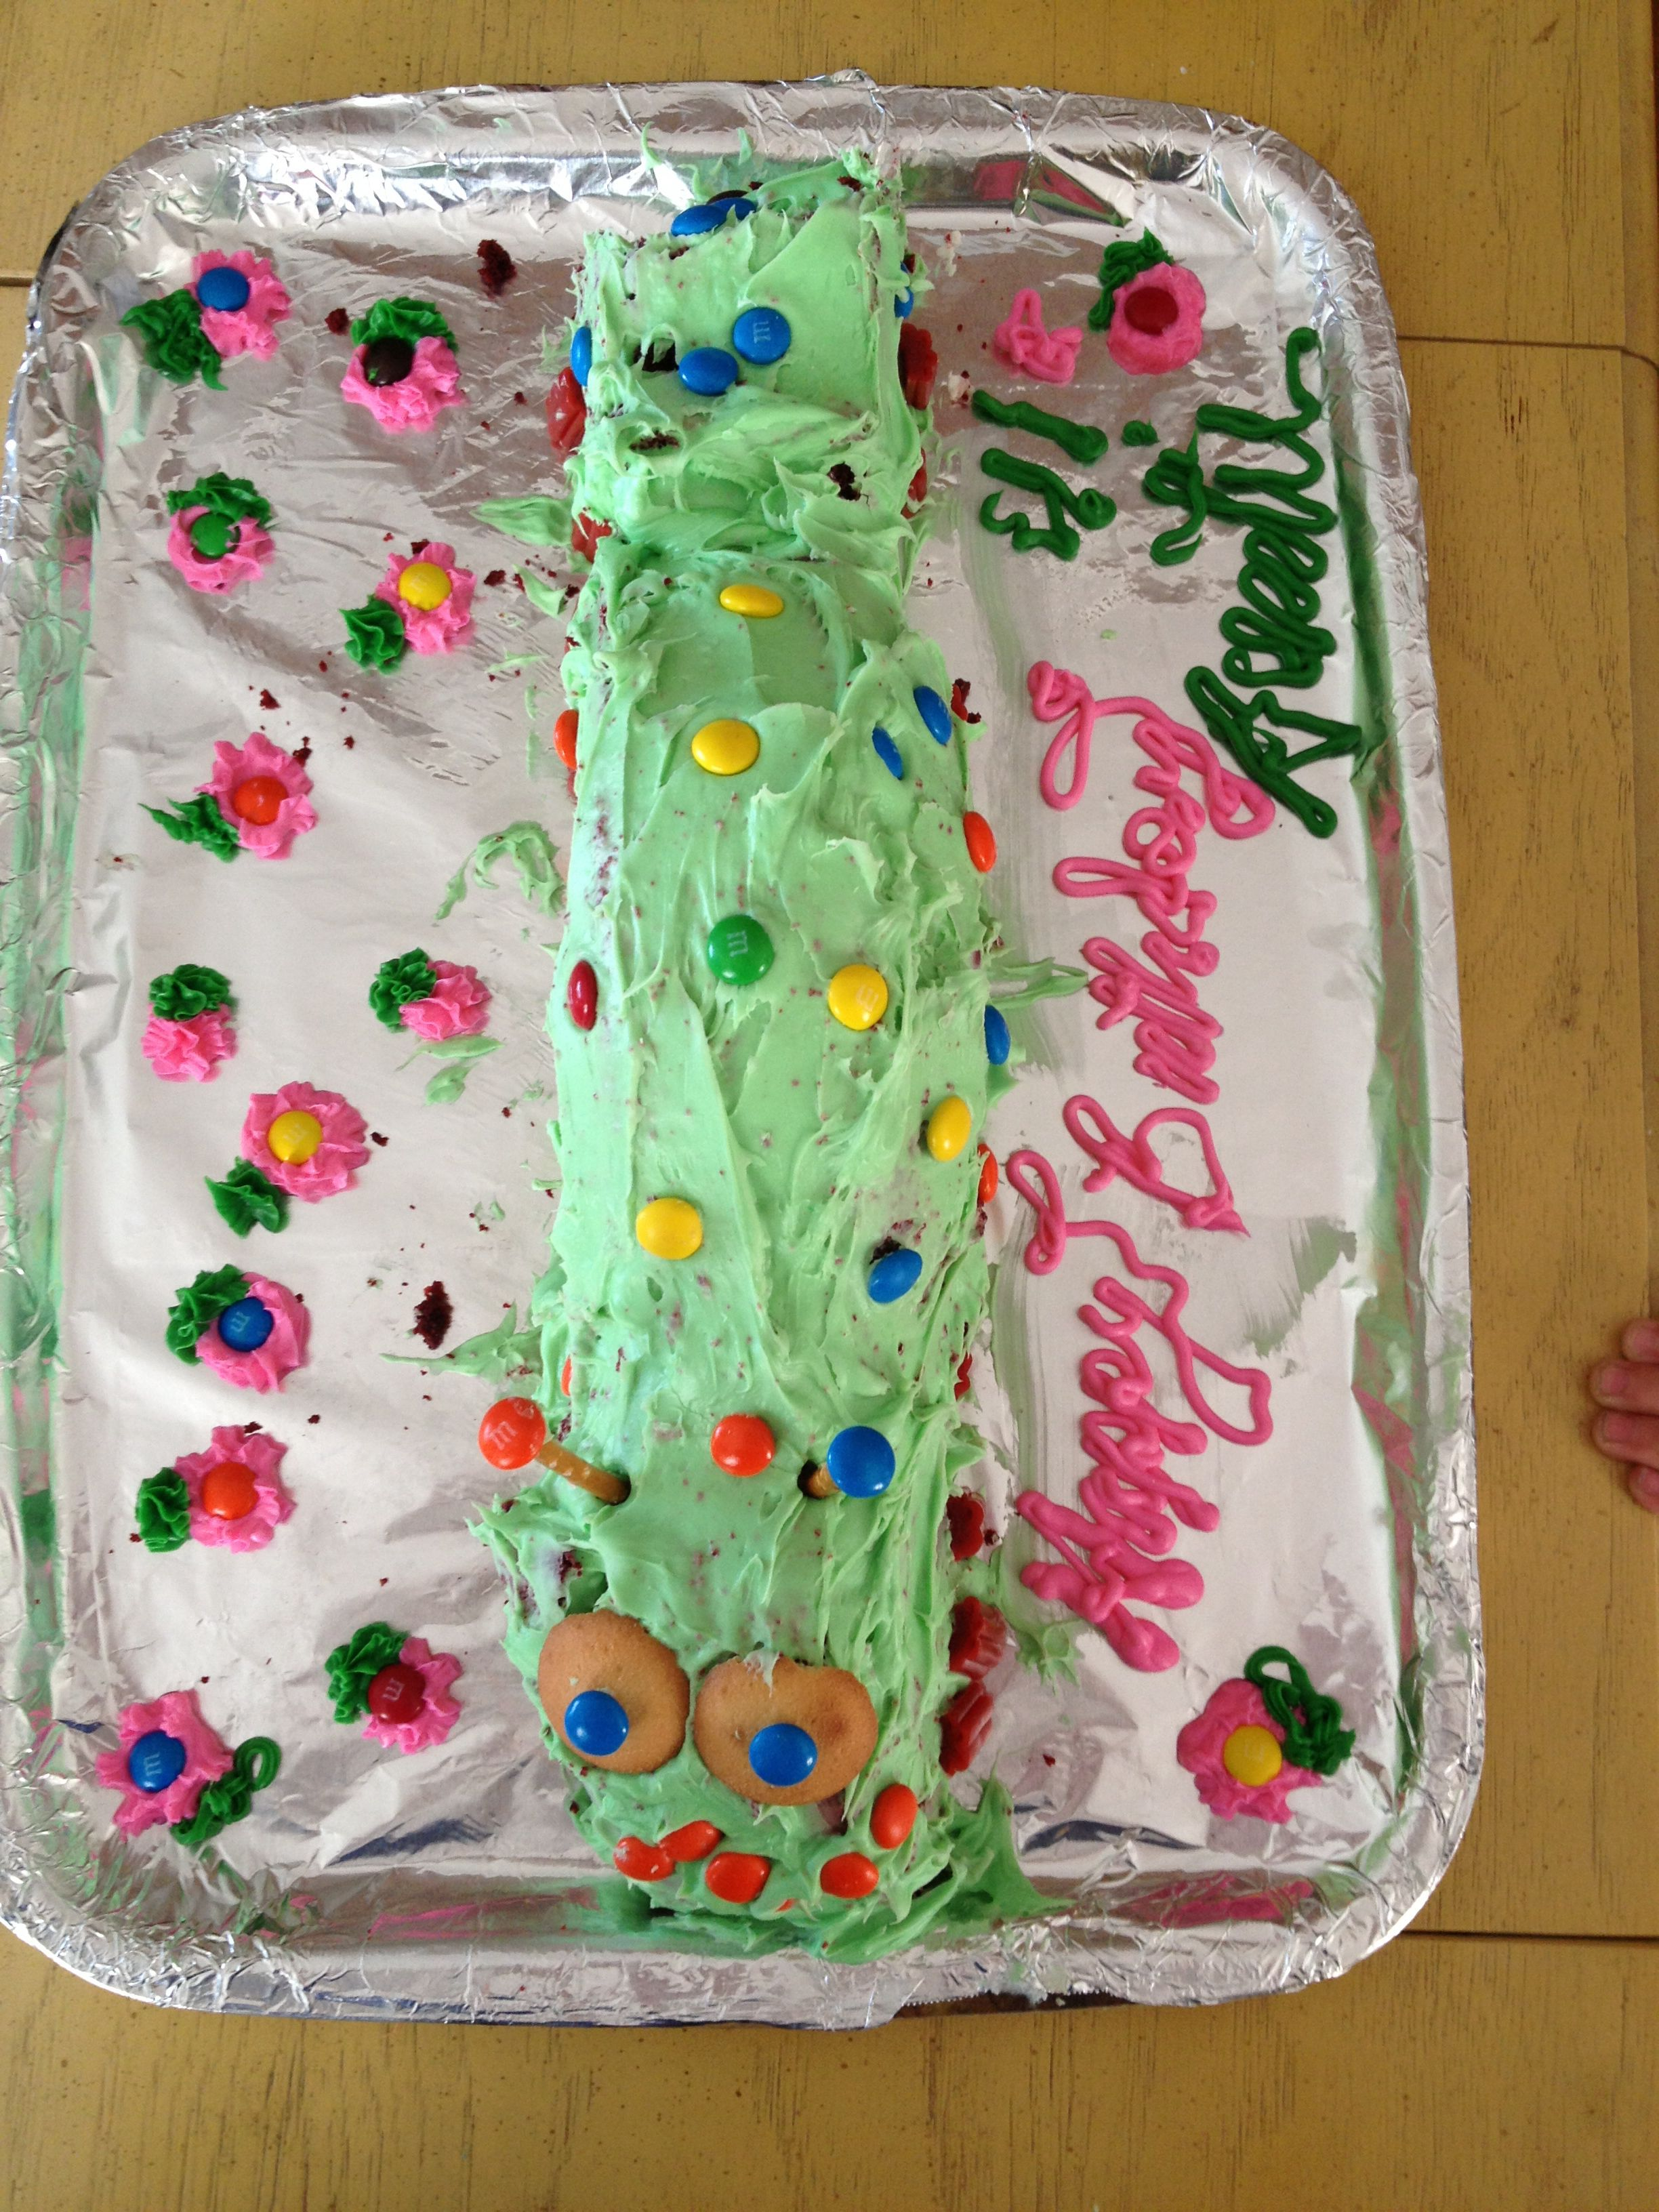 Inch worm cake!